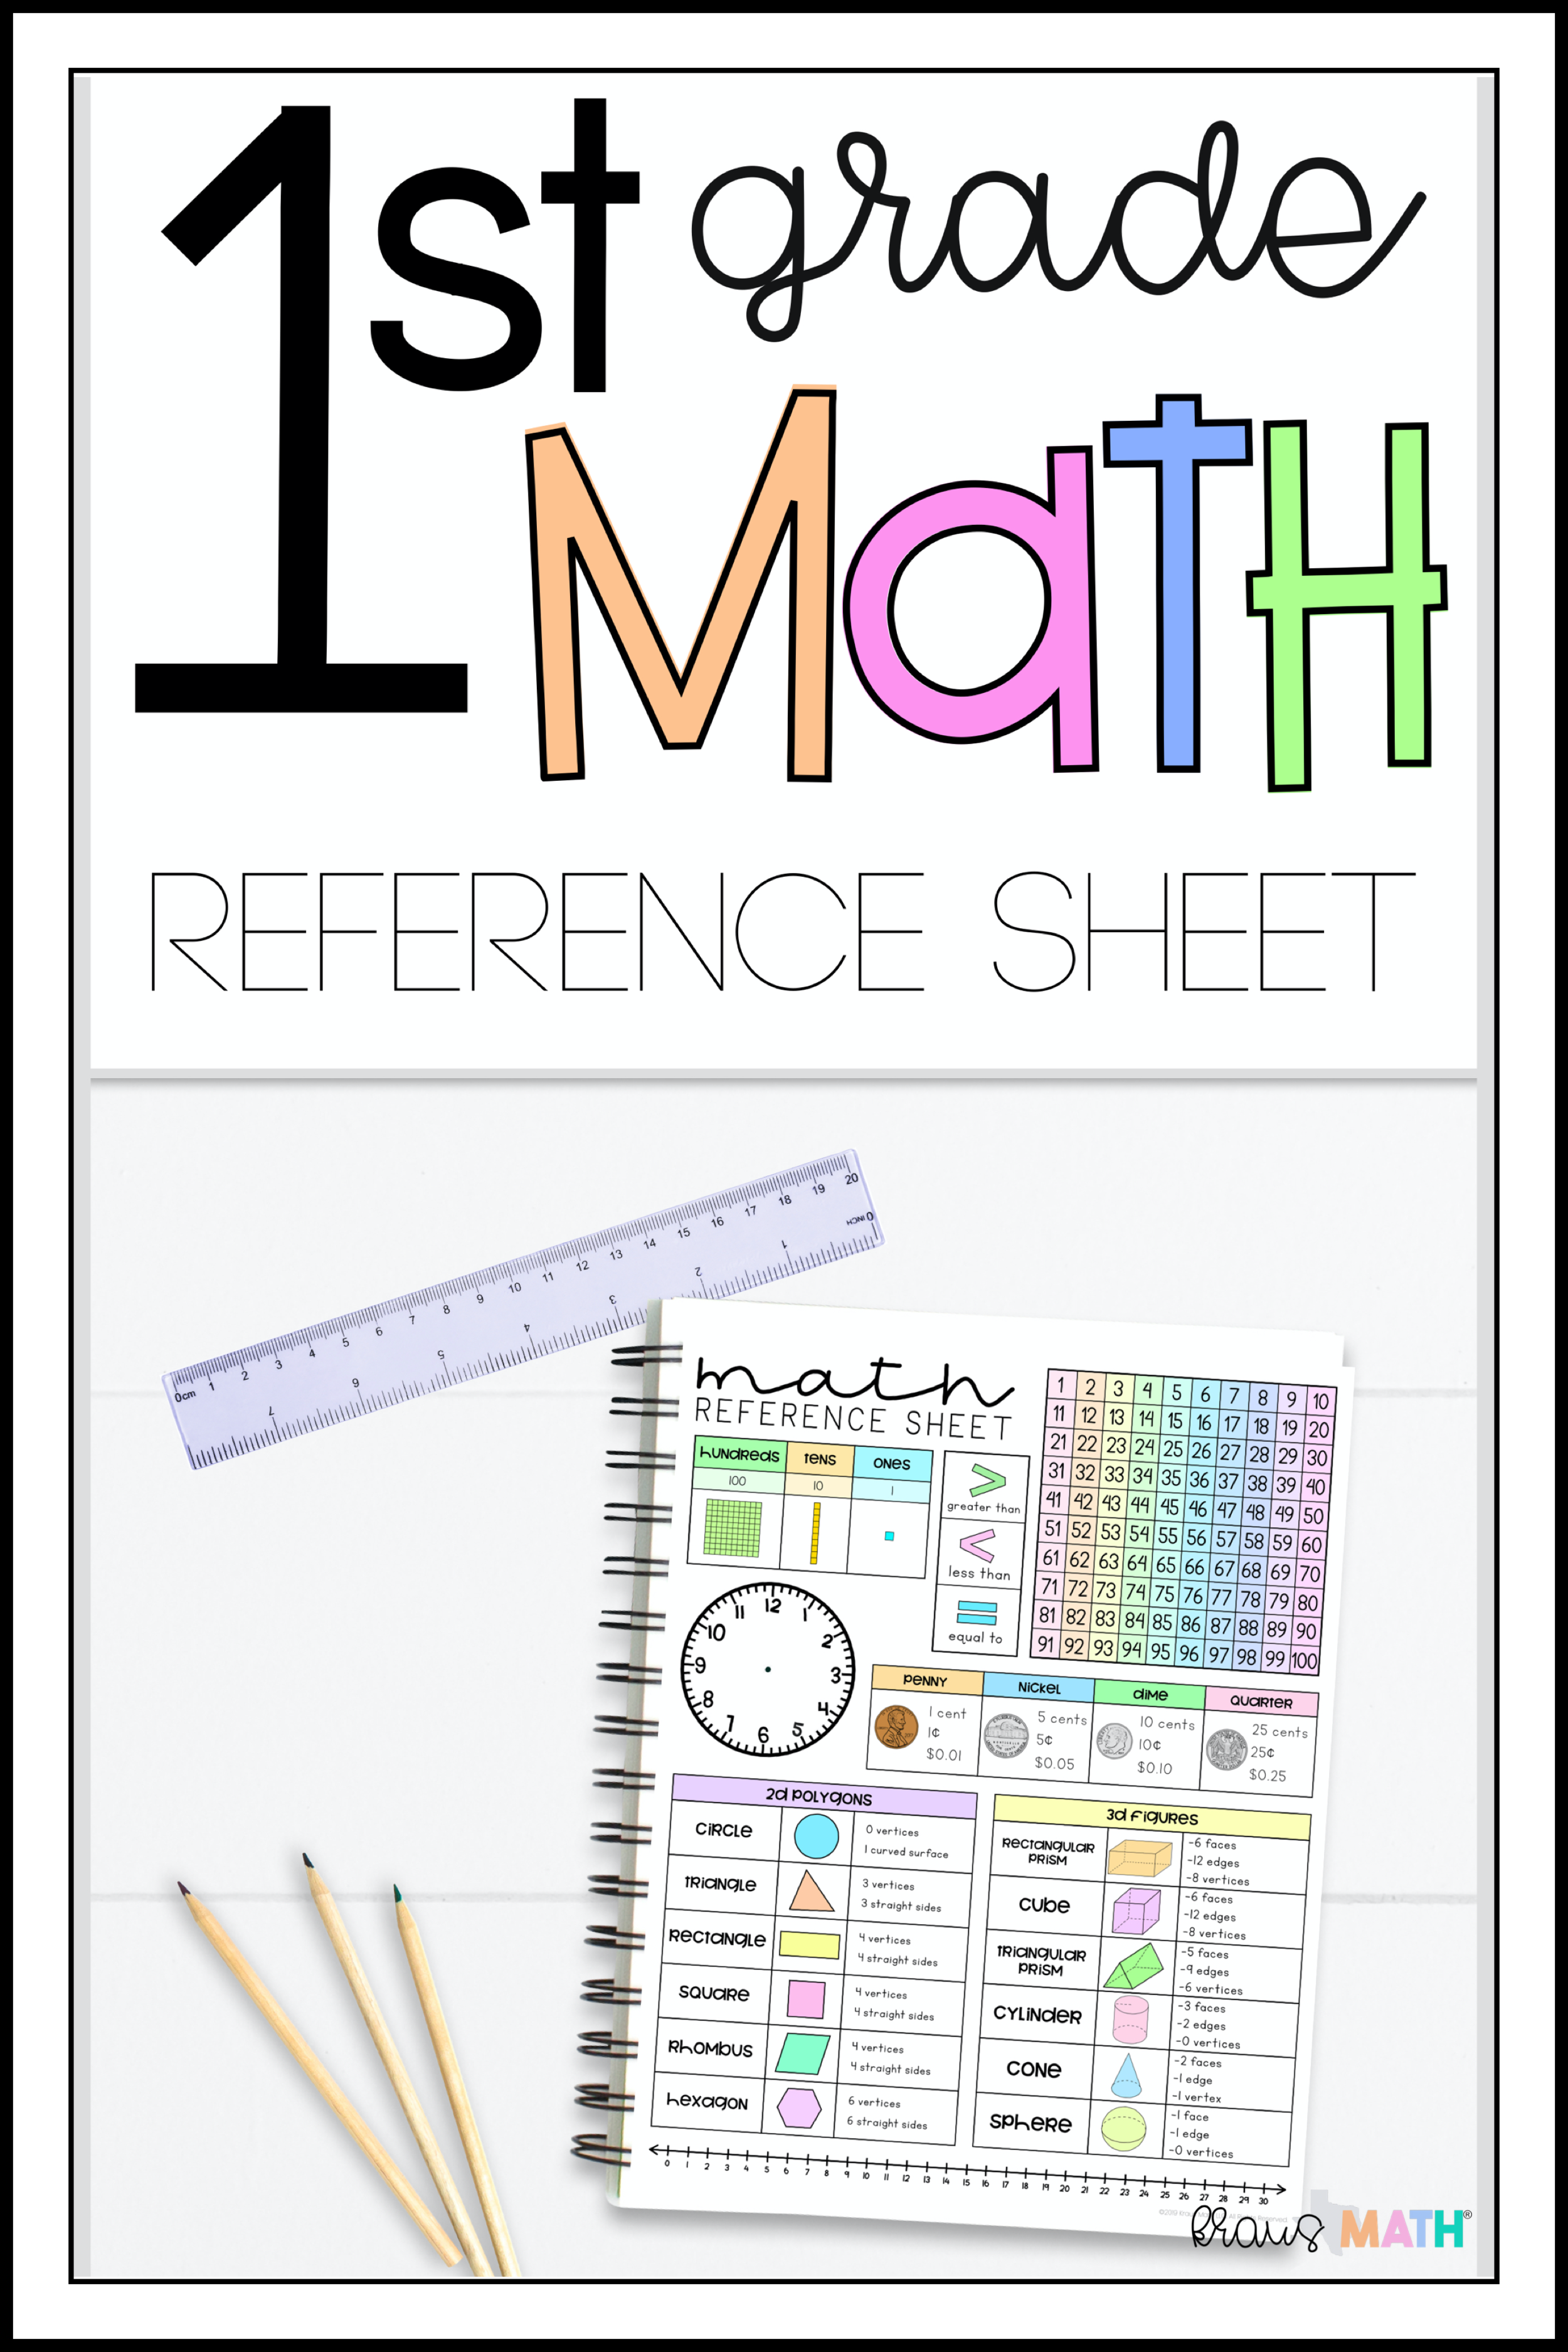 small resolution of 1st Grade Math Reference Sheet   Kraus Math   Math reference sheet